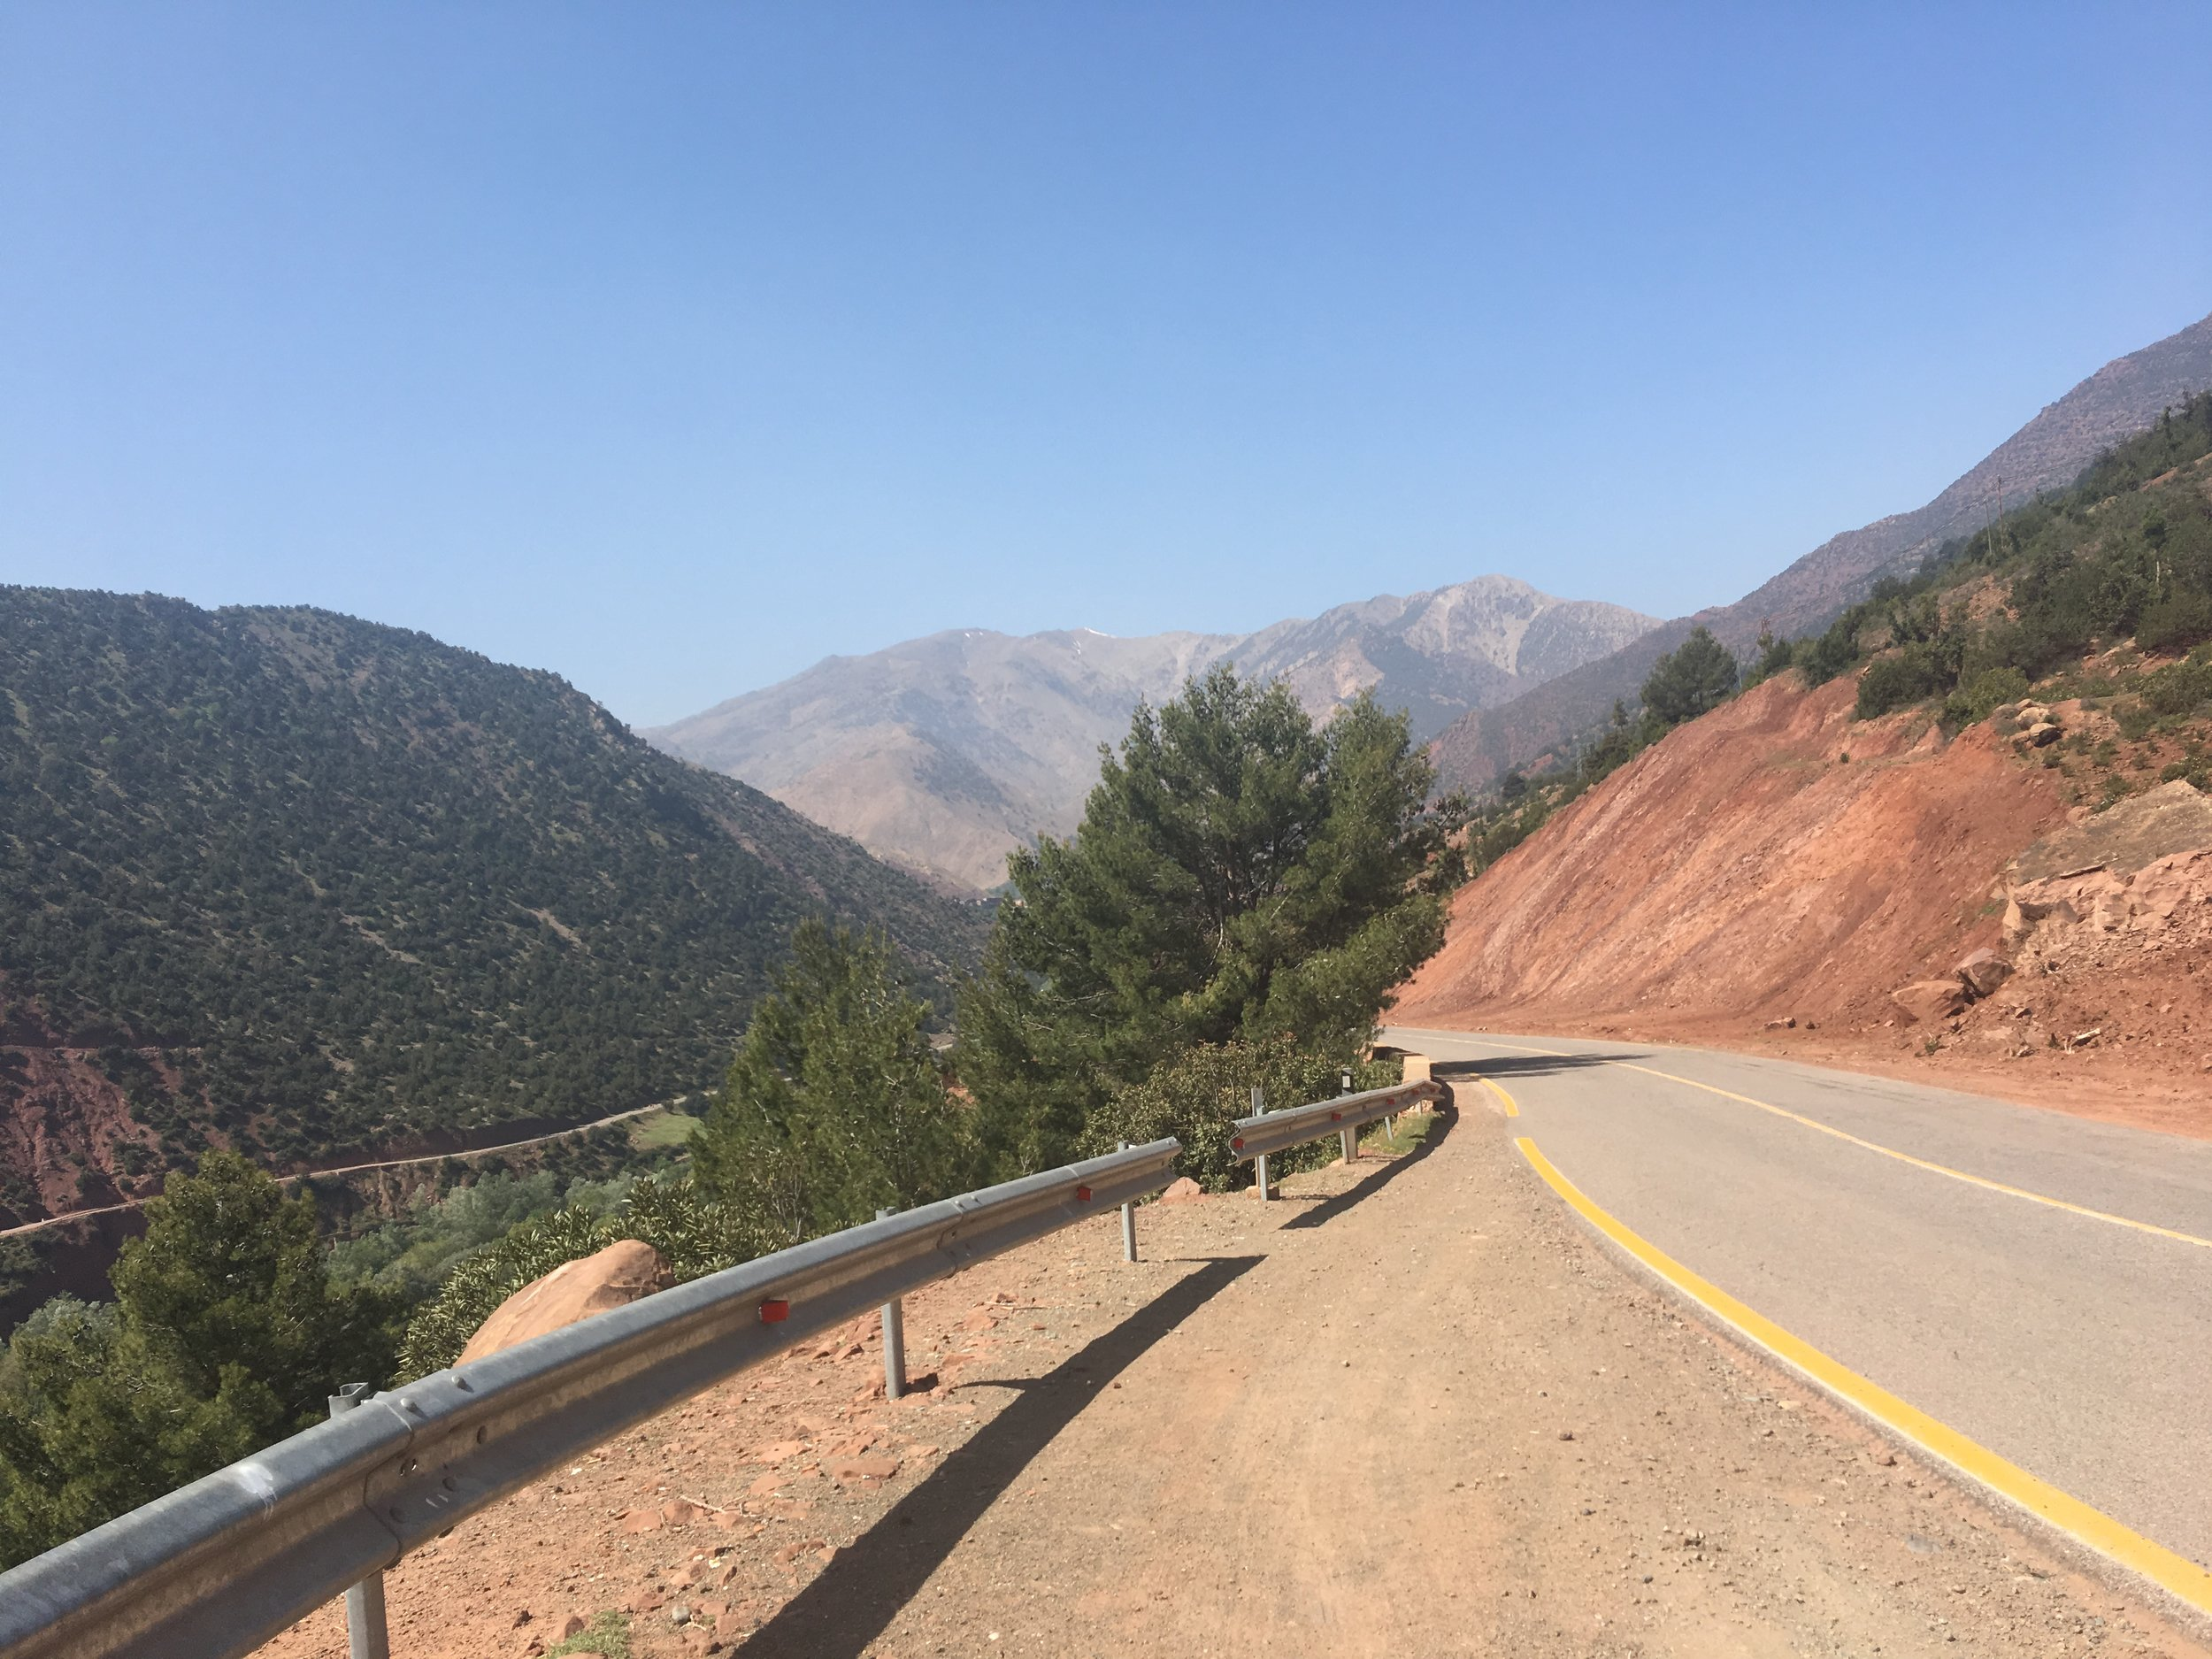 Photo I took of the road in the Atlas Mountains, Morocco.